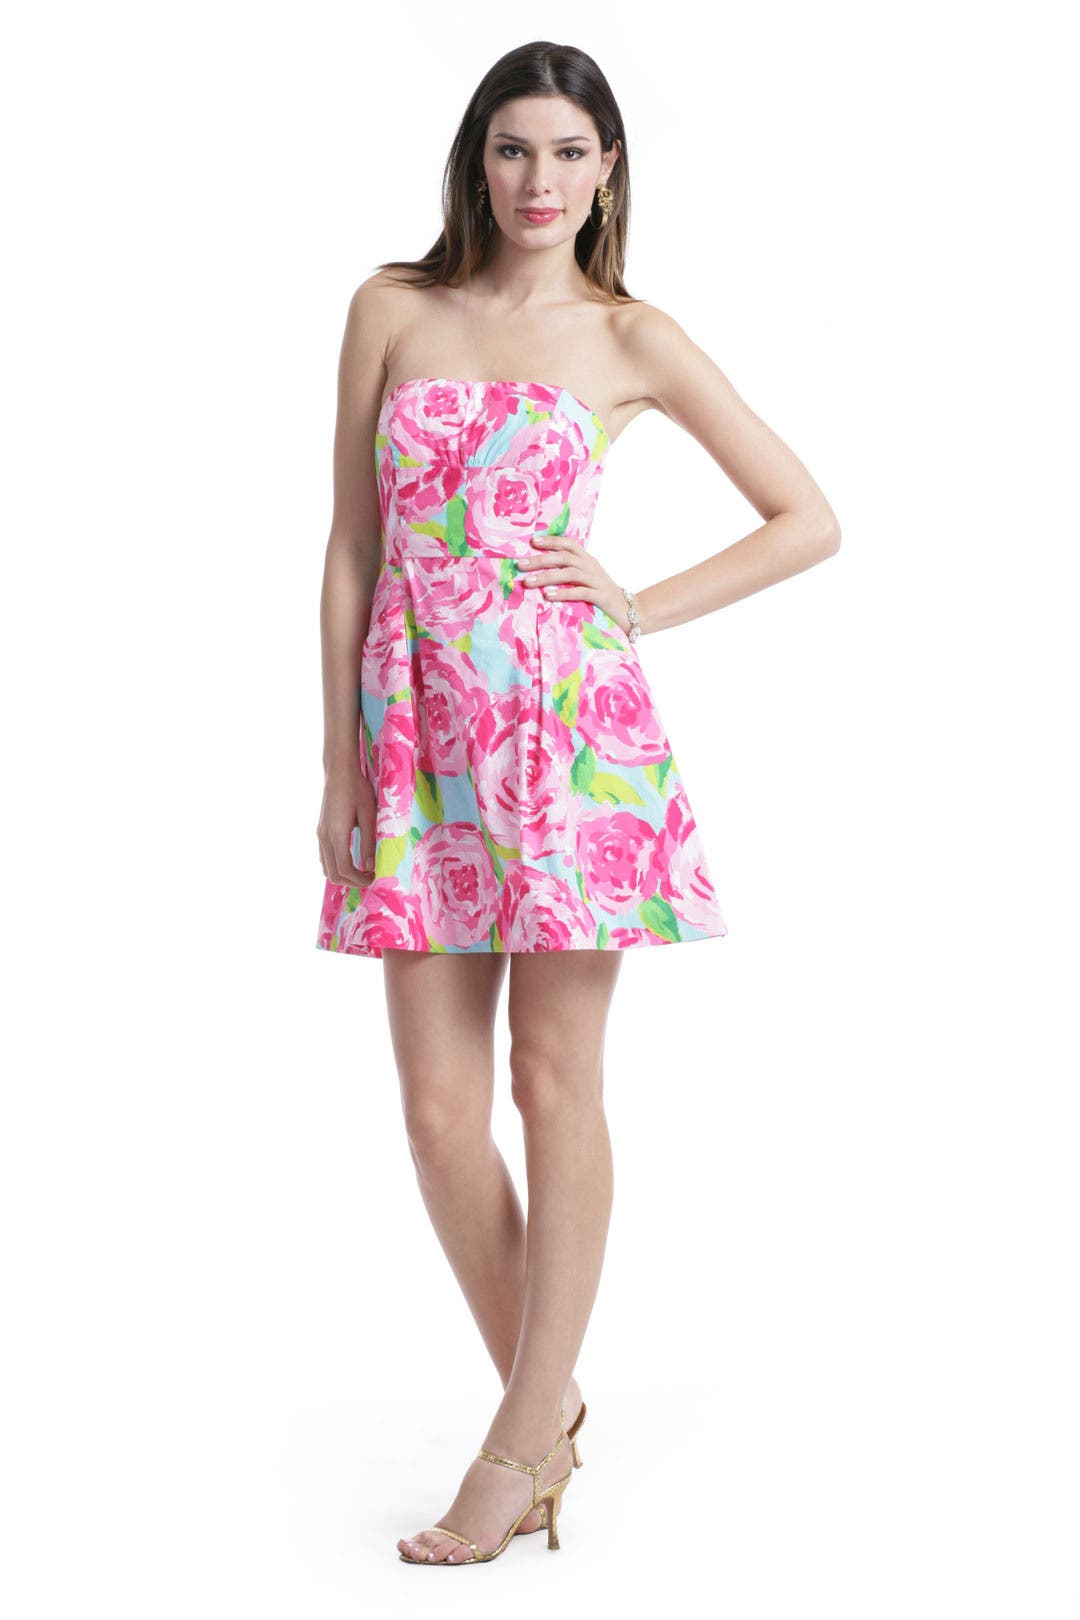 Pink Blossom Dress by Lilly Pulitzer for $50 | Rent the Runway